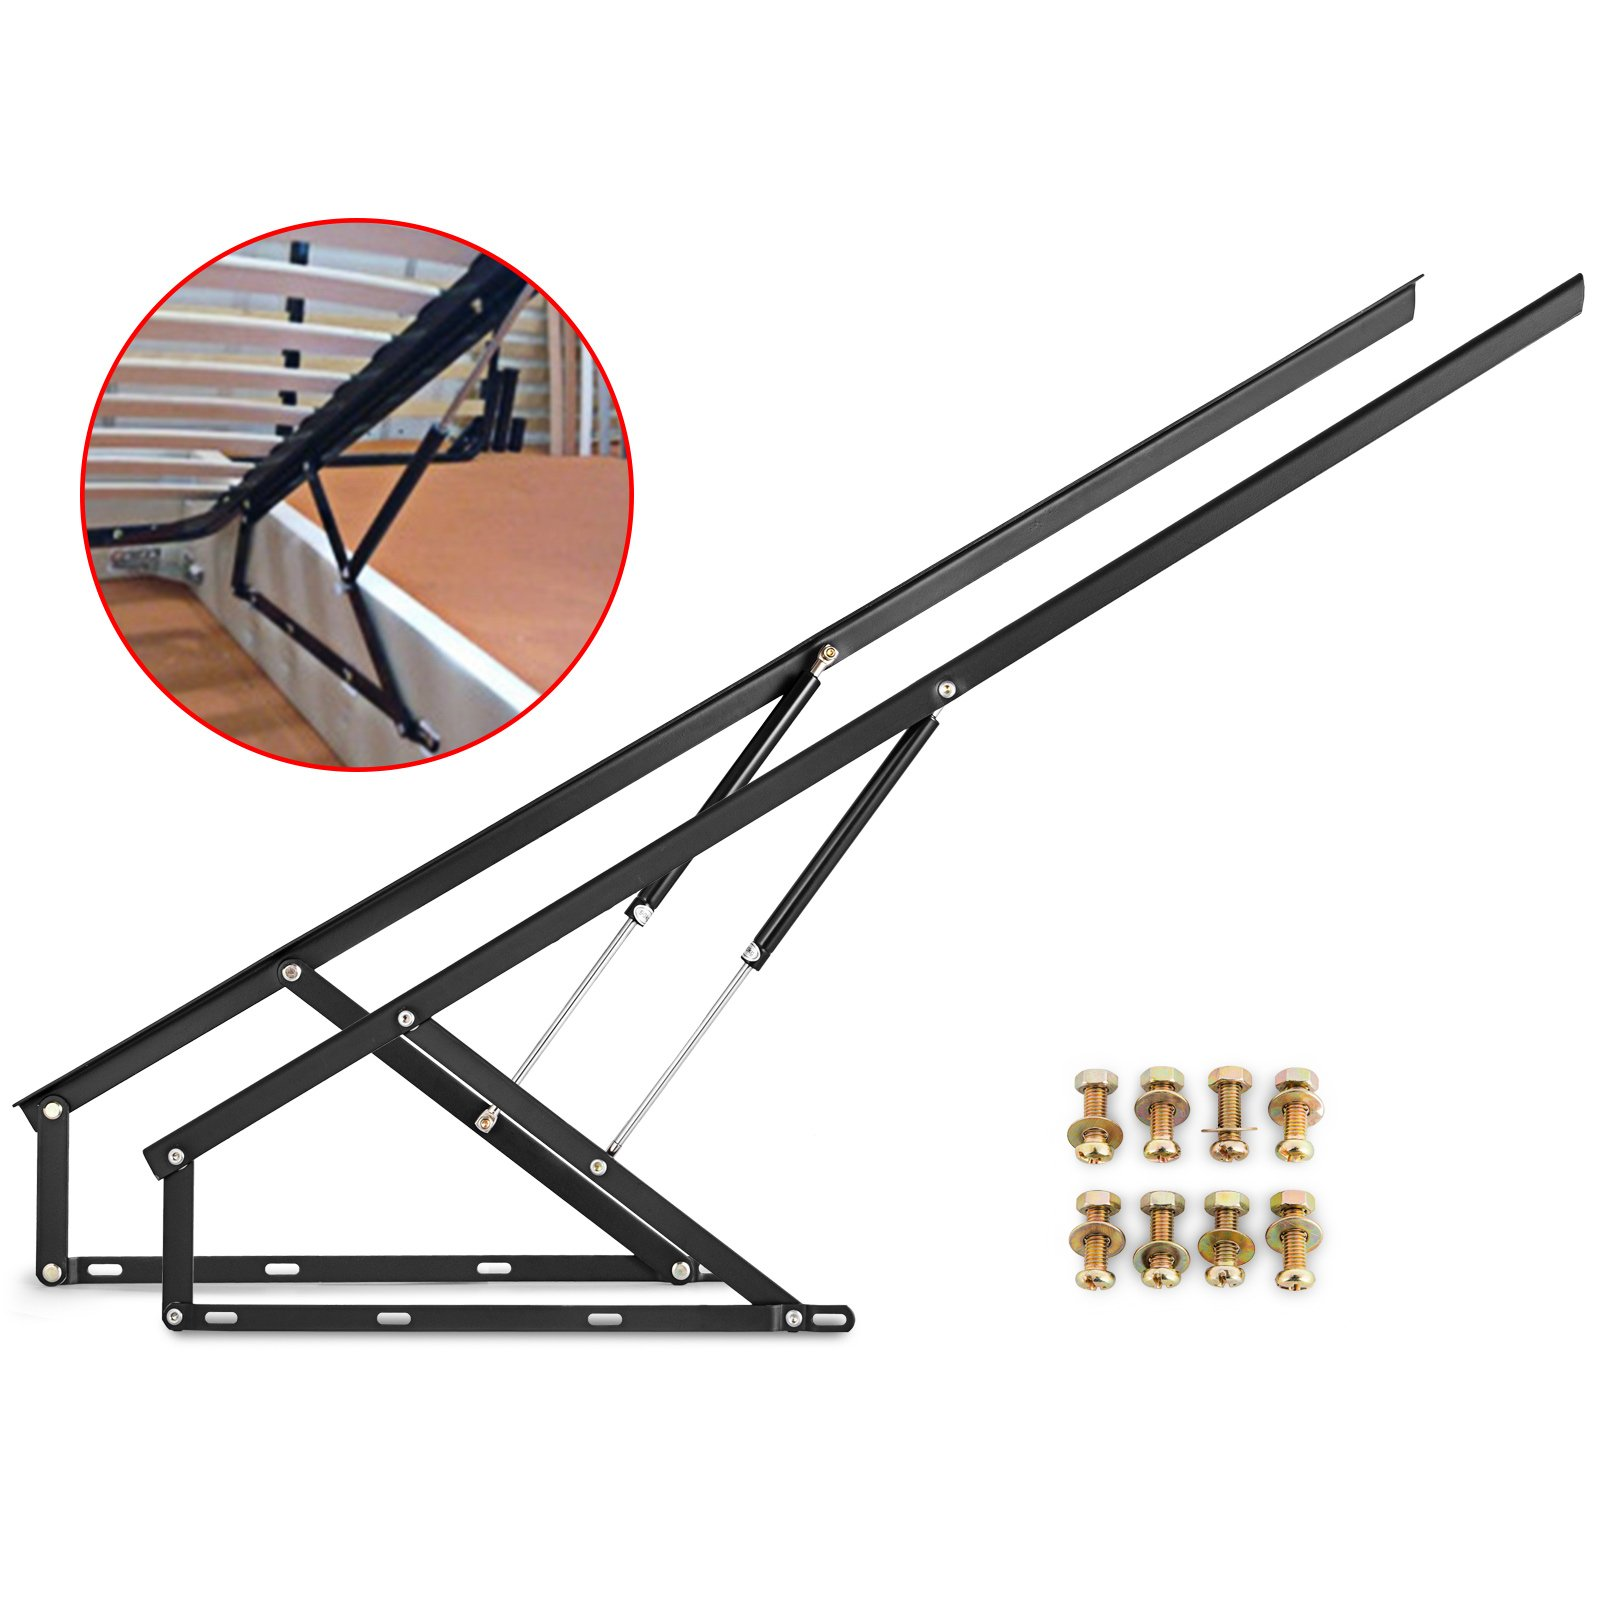 Happybuy Pair of 5FT Pneumatic Storage Bed Lift Mechanism Heavy Duty Gas Spring Bed Storage Lift Kit for Box Bed Sofa Storage Space Saving DIY Project Lifter Lift Up Hardware Black (B150) by Happybuy (Image #5)